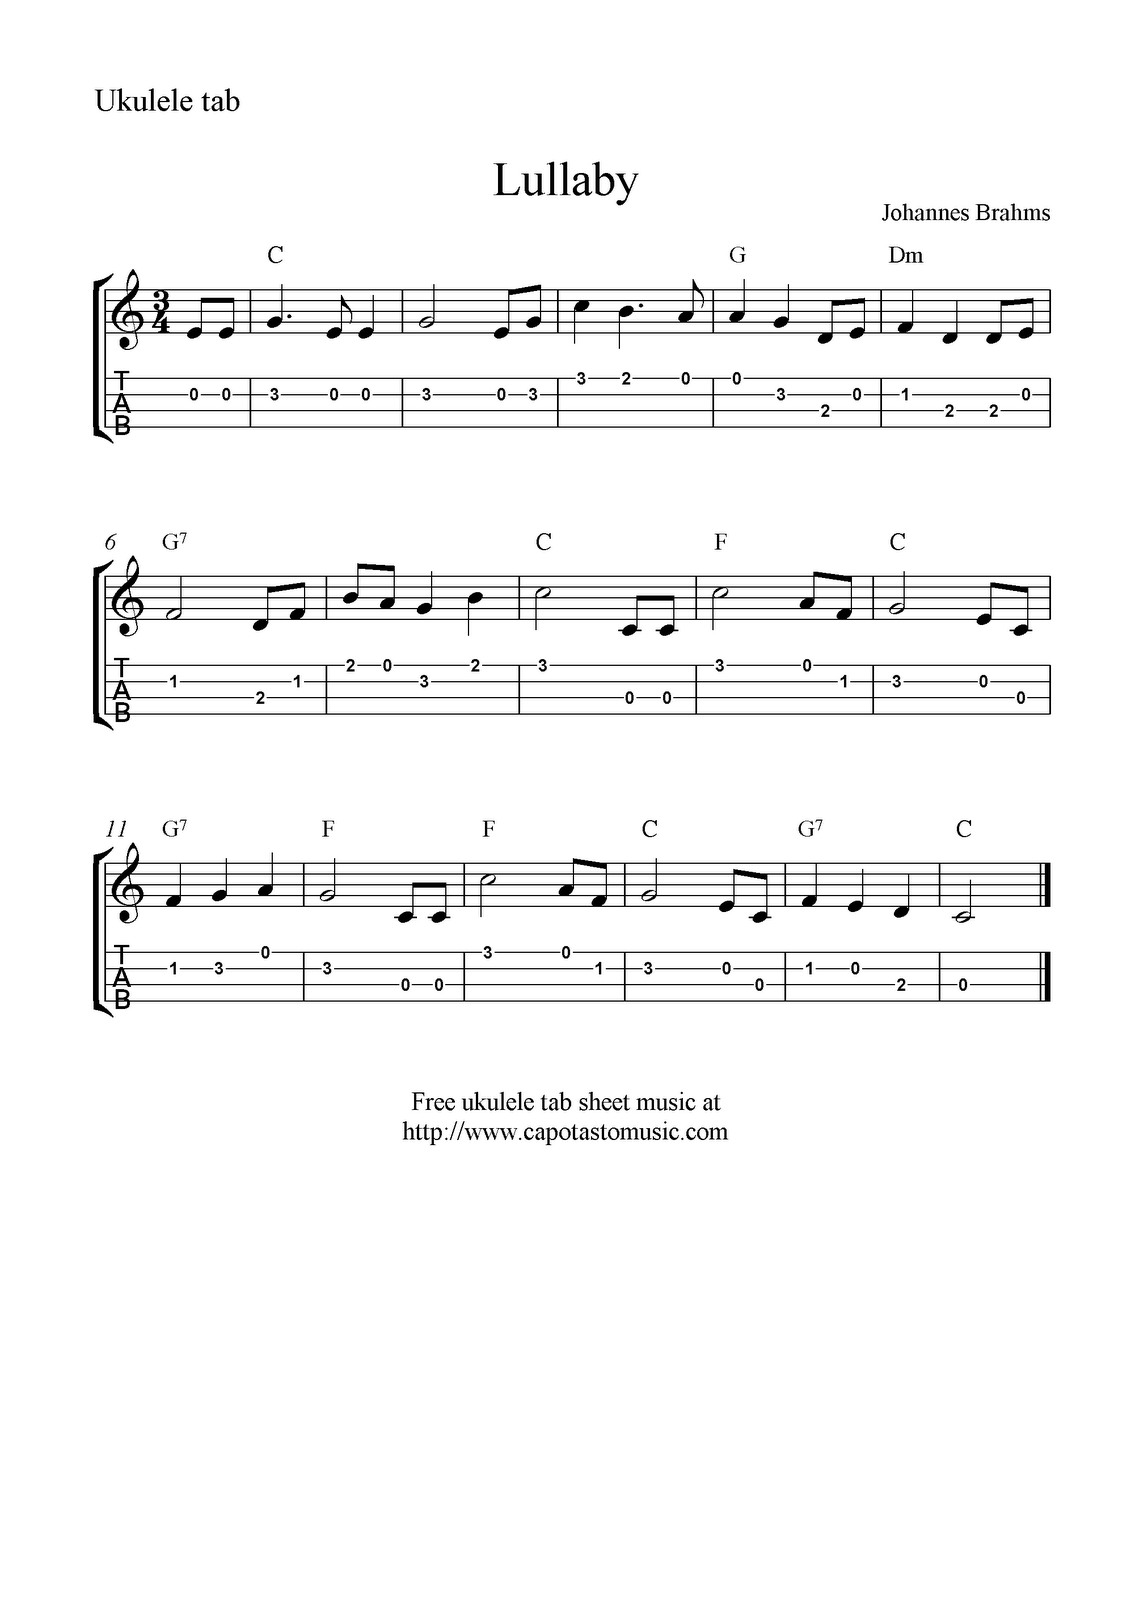 Lullaby By Brahms Ukulele Sheet Music Free Printable Ukulele